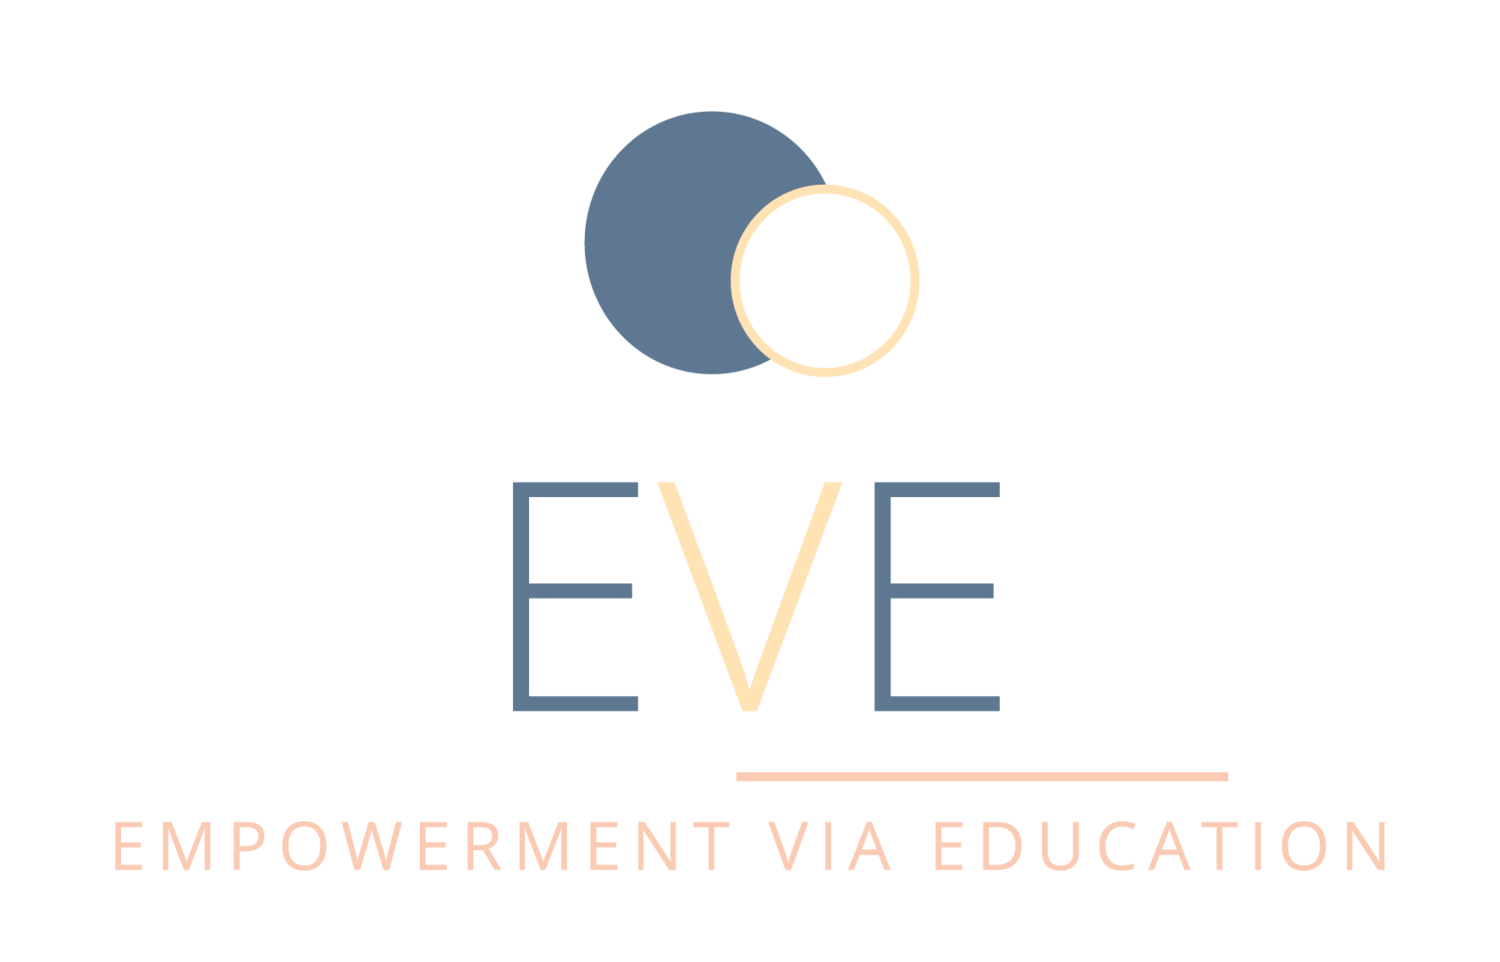 EVE - Empowerment Via Education